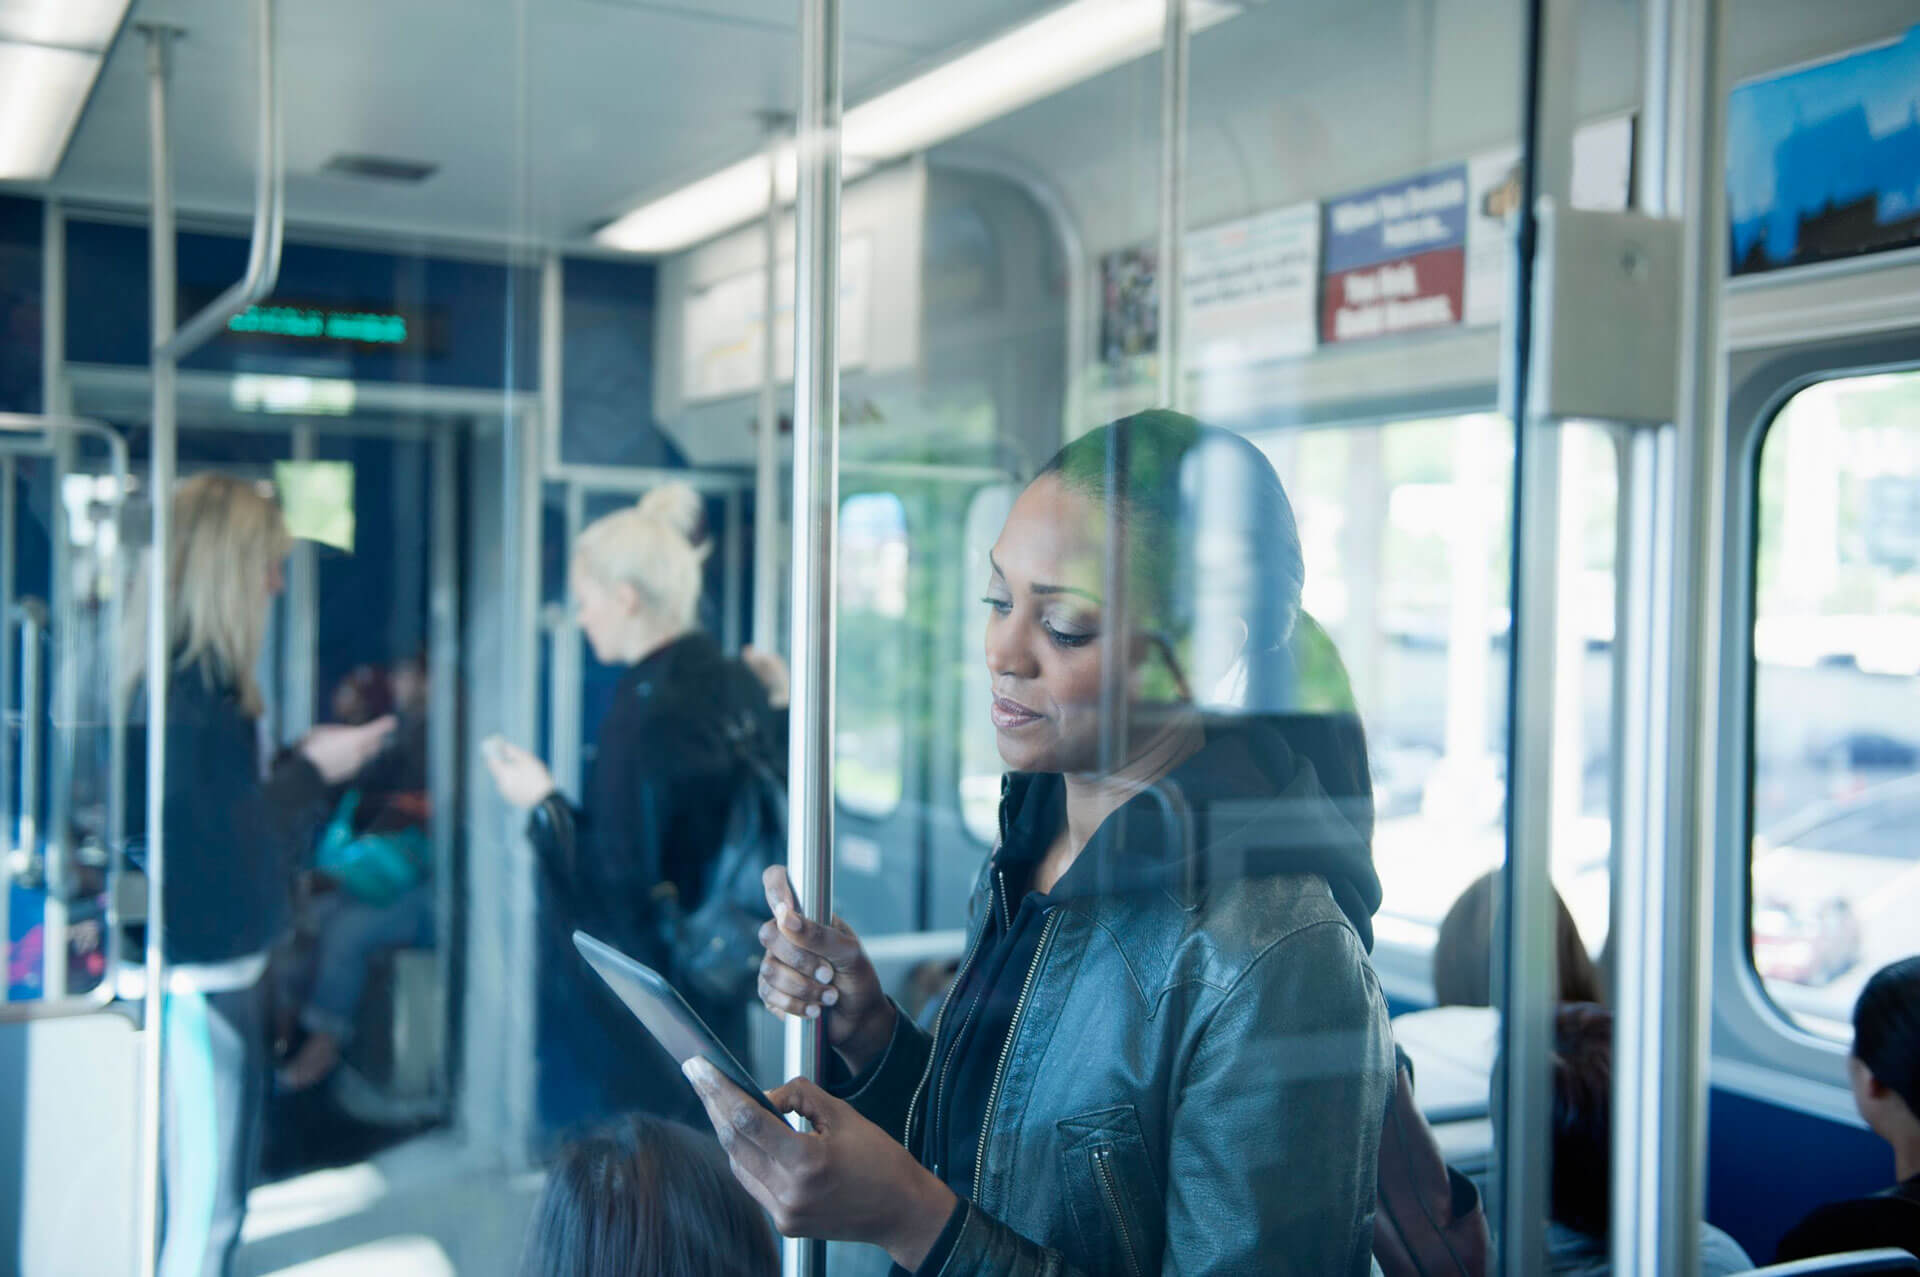 Eine Frau steht in einem öffentlichen Verkehrsmittel und schaut auf ein Tablet. – Bild: GettyImages © Jose Luis Pelaez Inc/Blend Images LLC